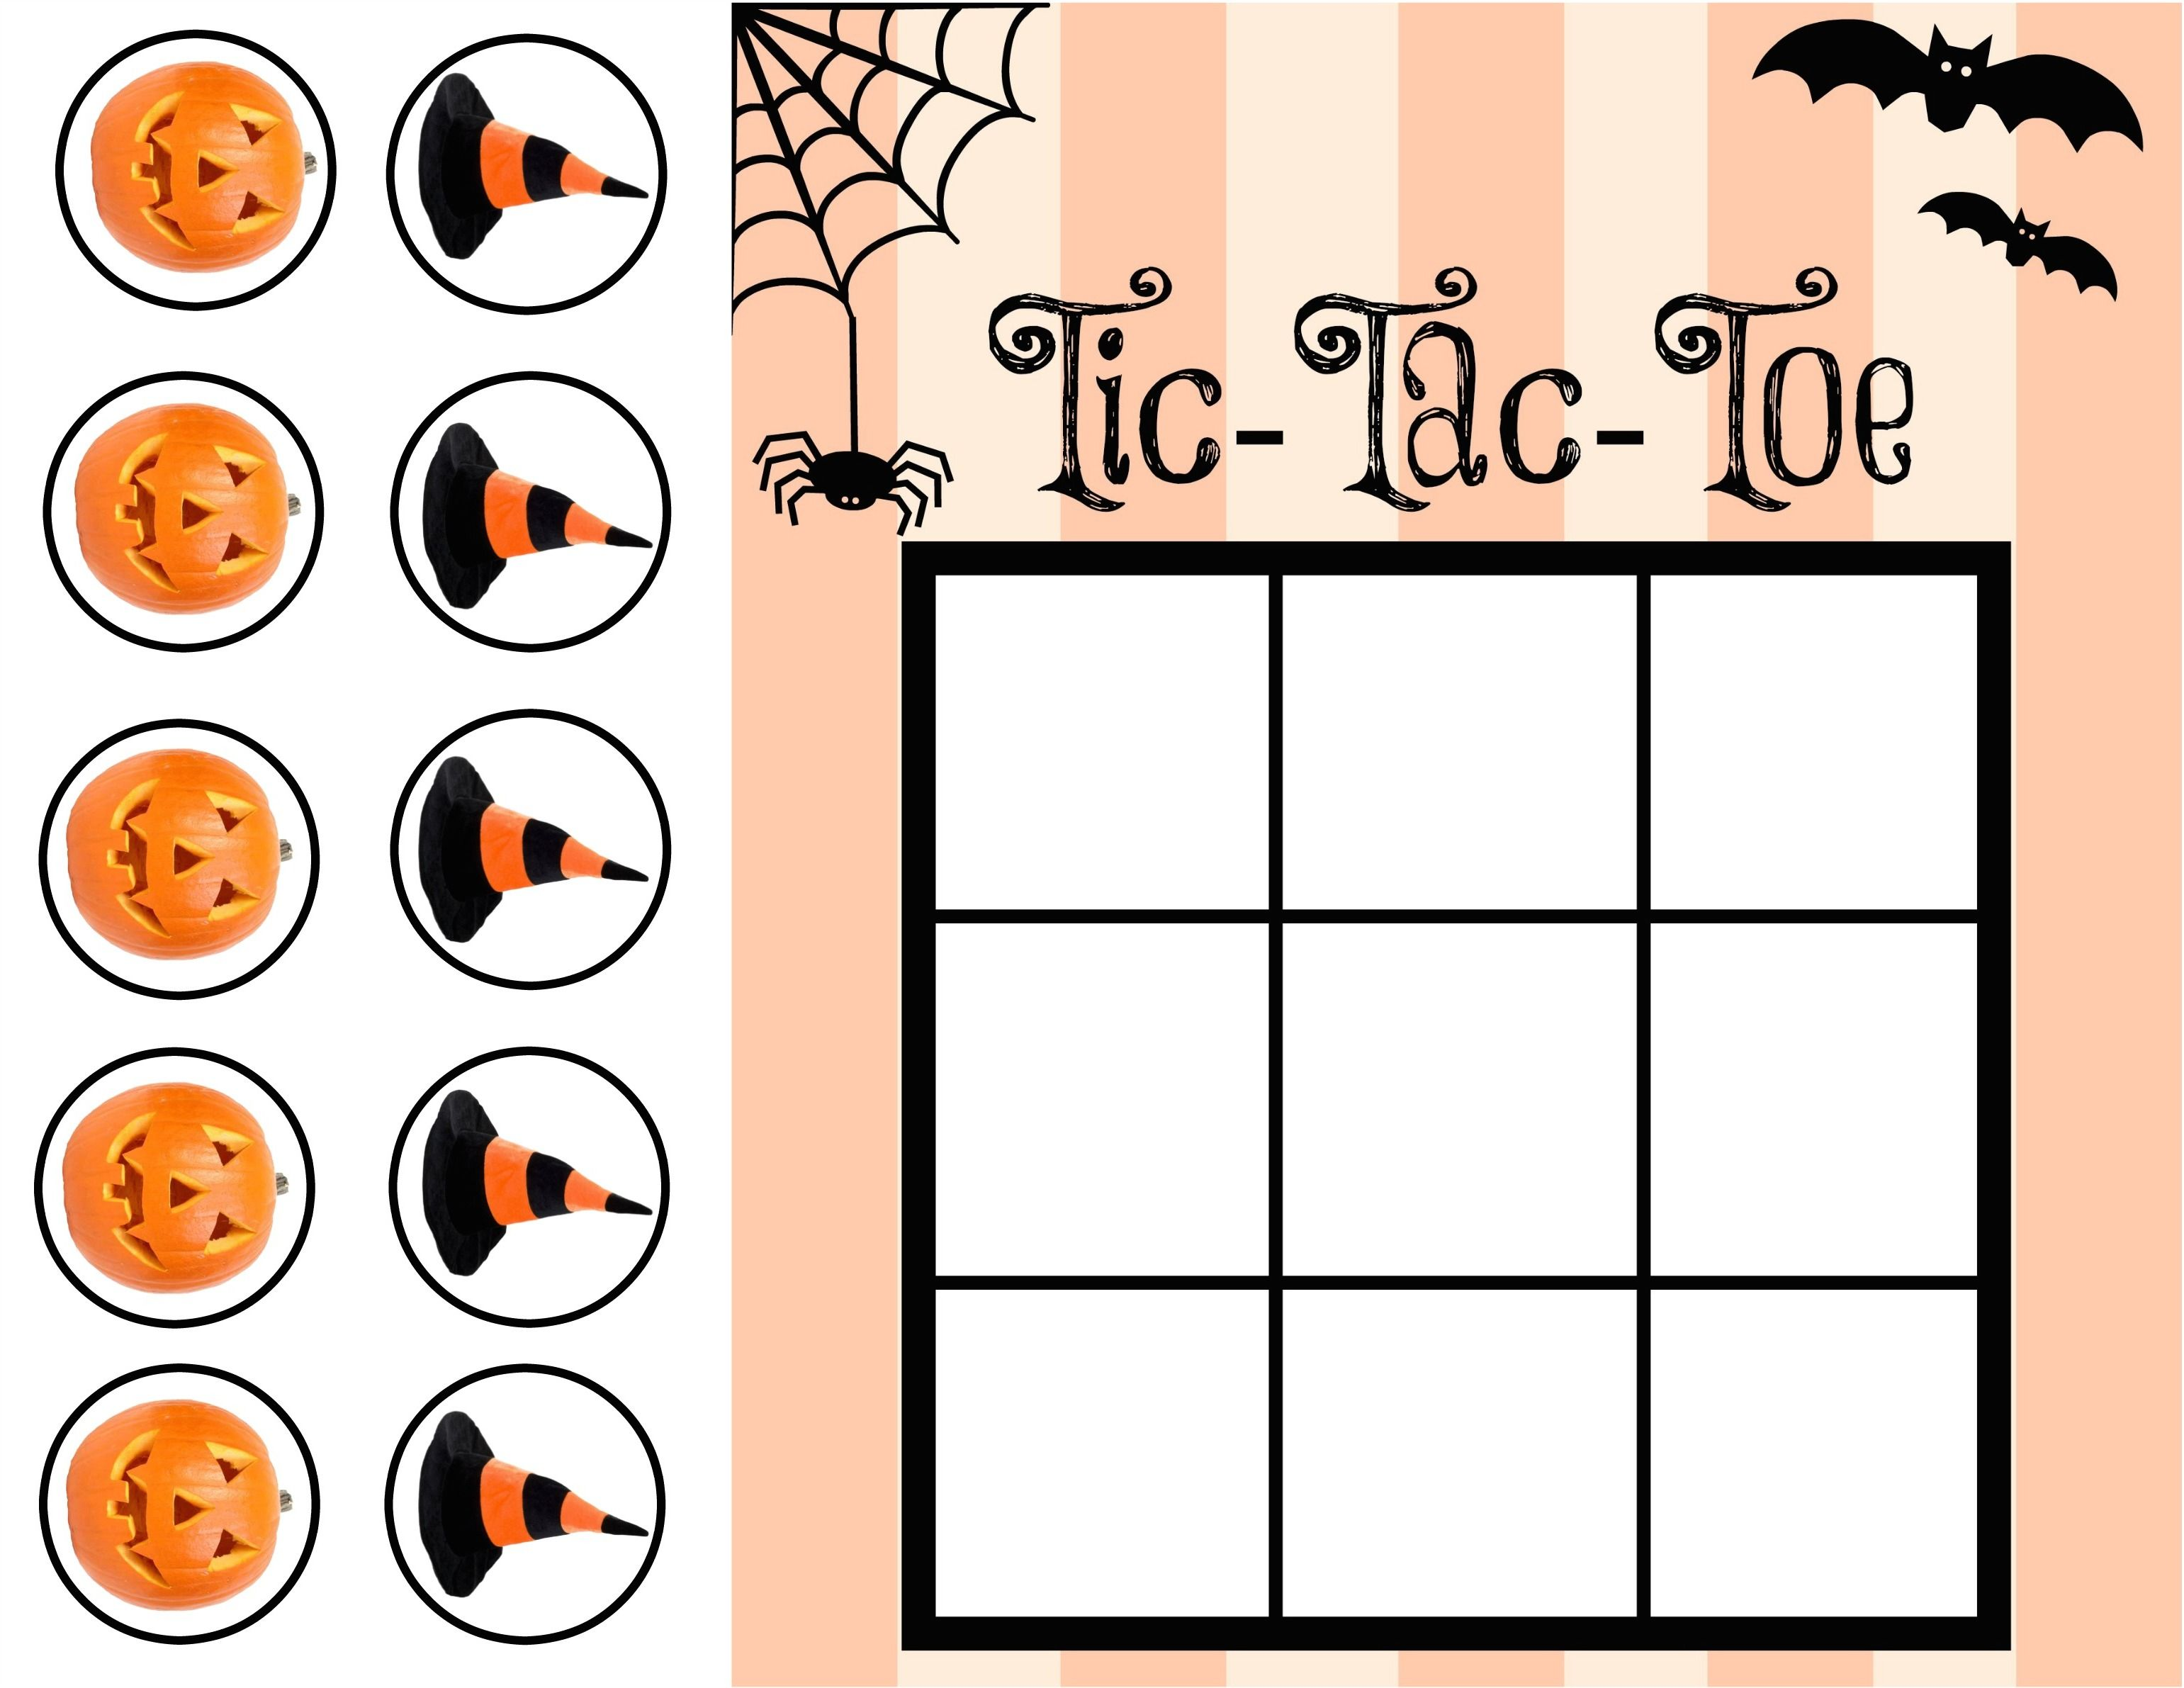 7 Best Images of Printable Halloween Tic Tac Toe - Halloween Tic Tac Toe  Printable, Halloween Tic Tac Toe Printable and Halloween Tic Tac Toe  Printable